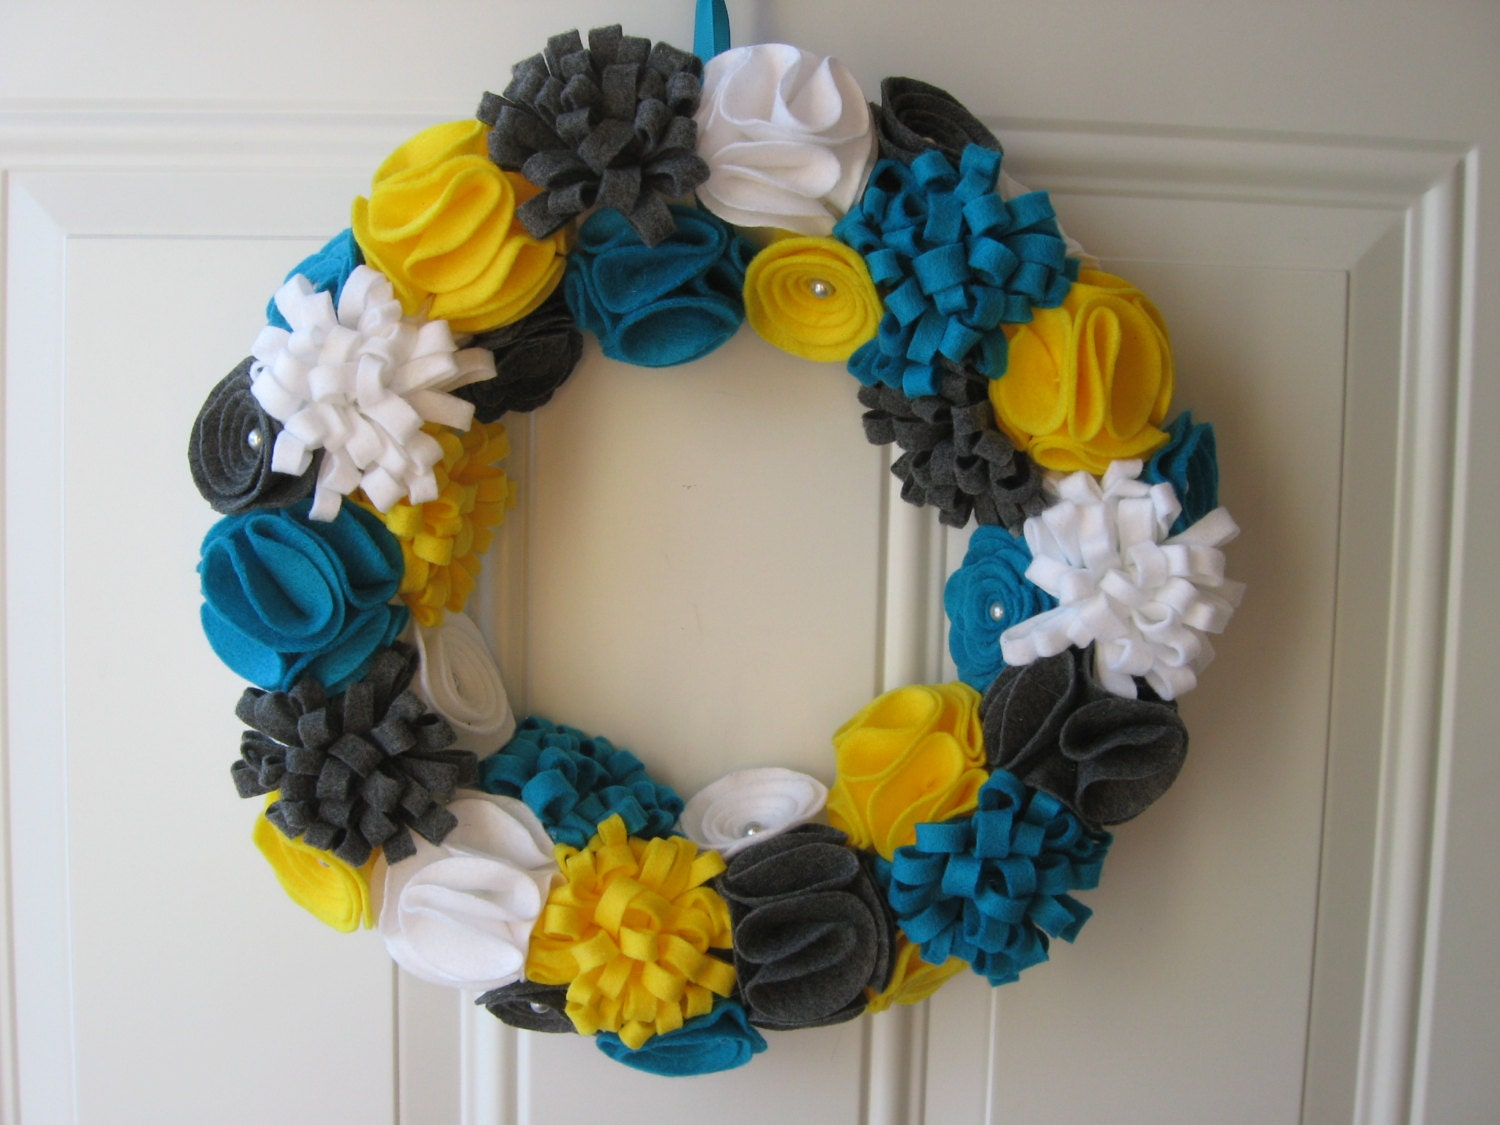 Spring Wreath Teal Yellow White and Grey Felt Flower & Felt Flowers Spring Wreath u2014 Crafthubs pezcame.com